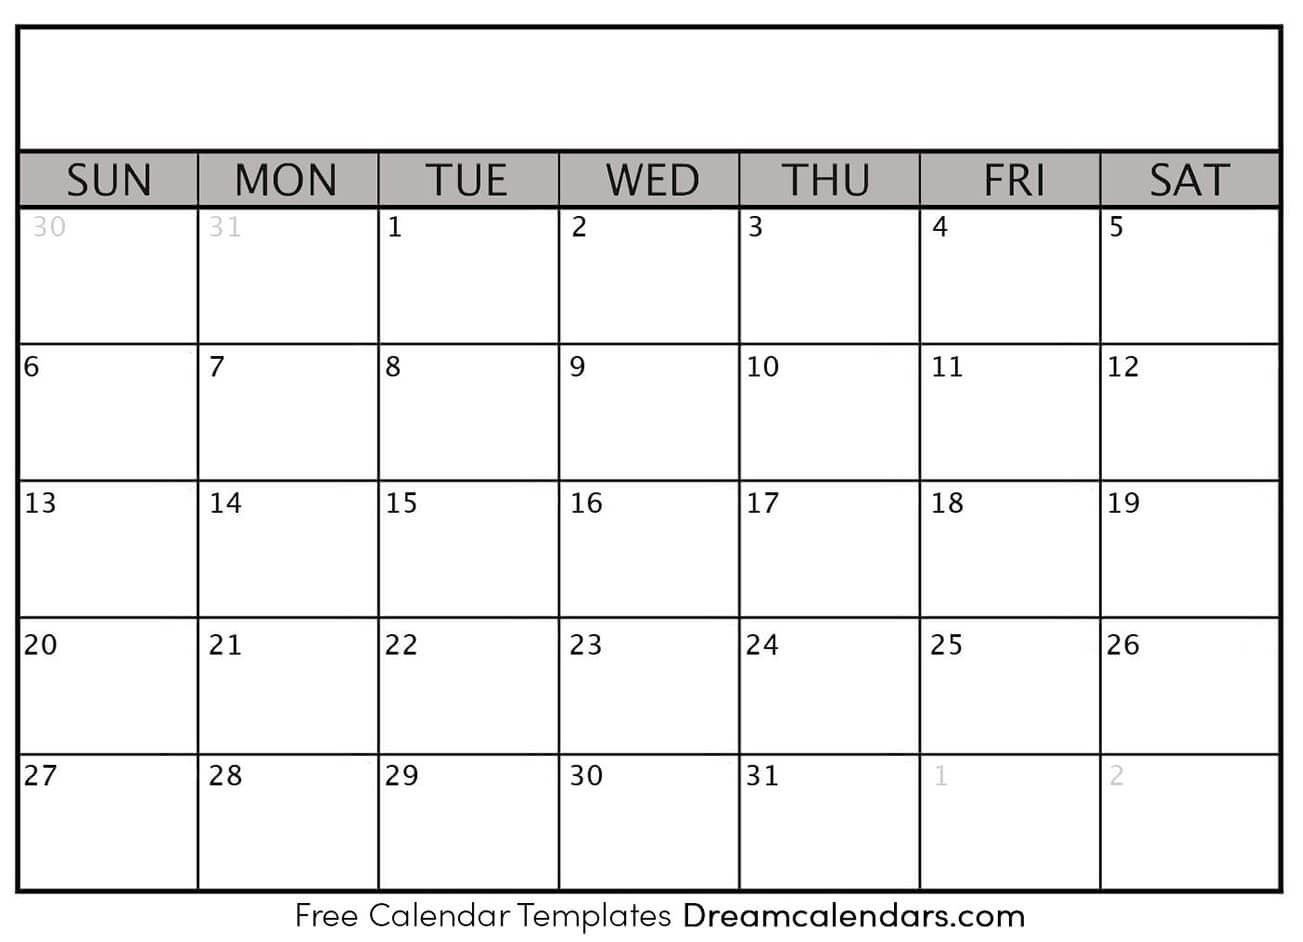 Printable Blank Calendar 2020 | Dream Calendars  Free Printable Calendar Templates